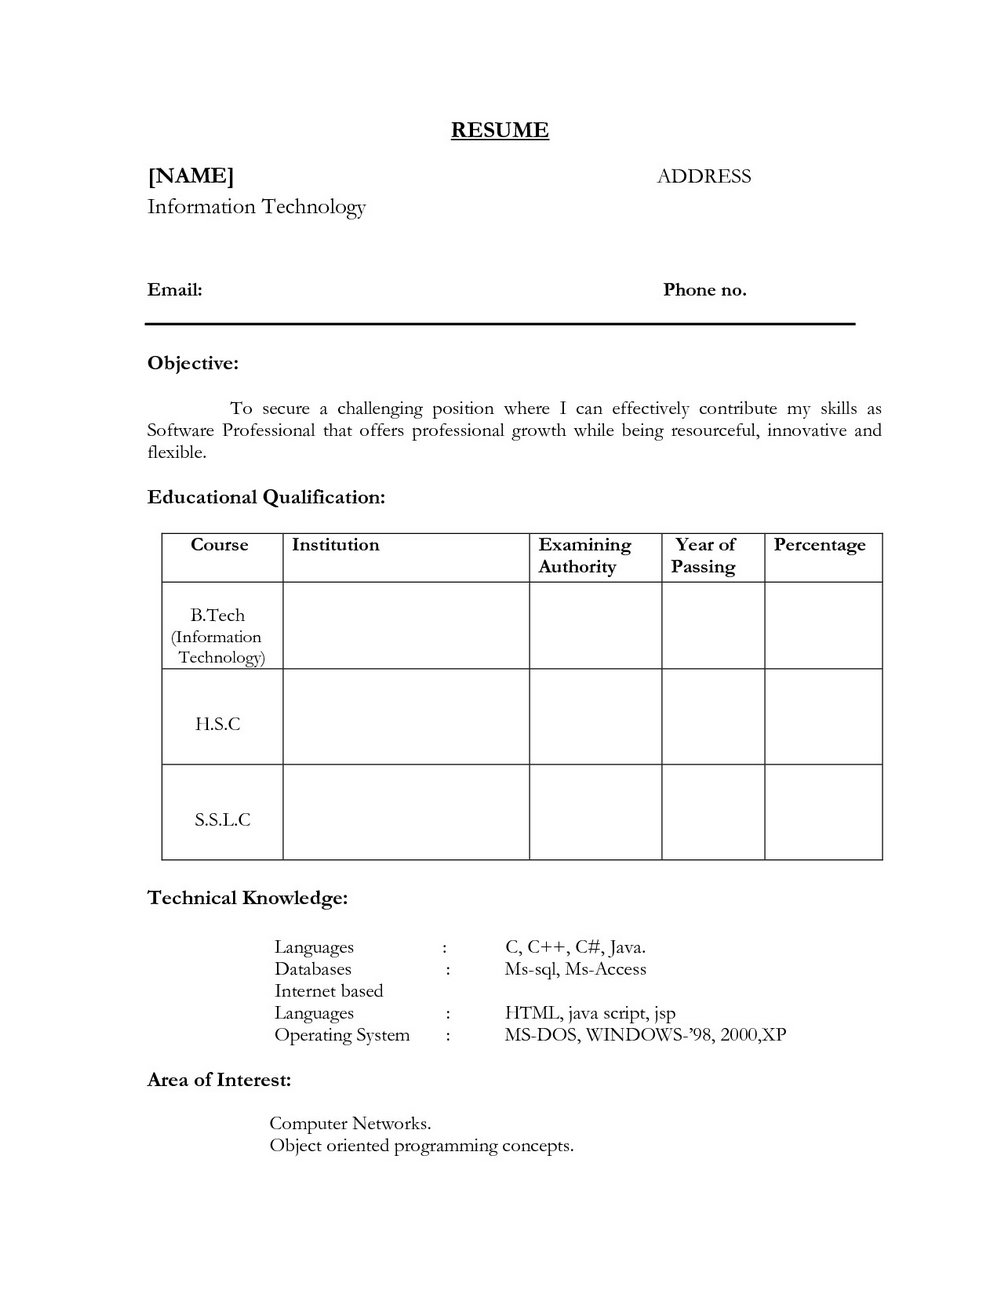 Sample Resume Format For Freshers Download Free